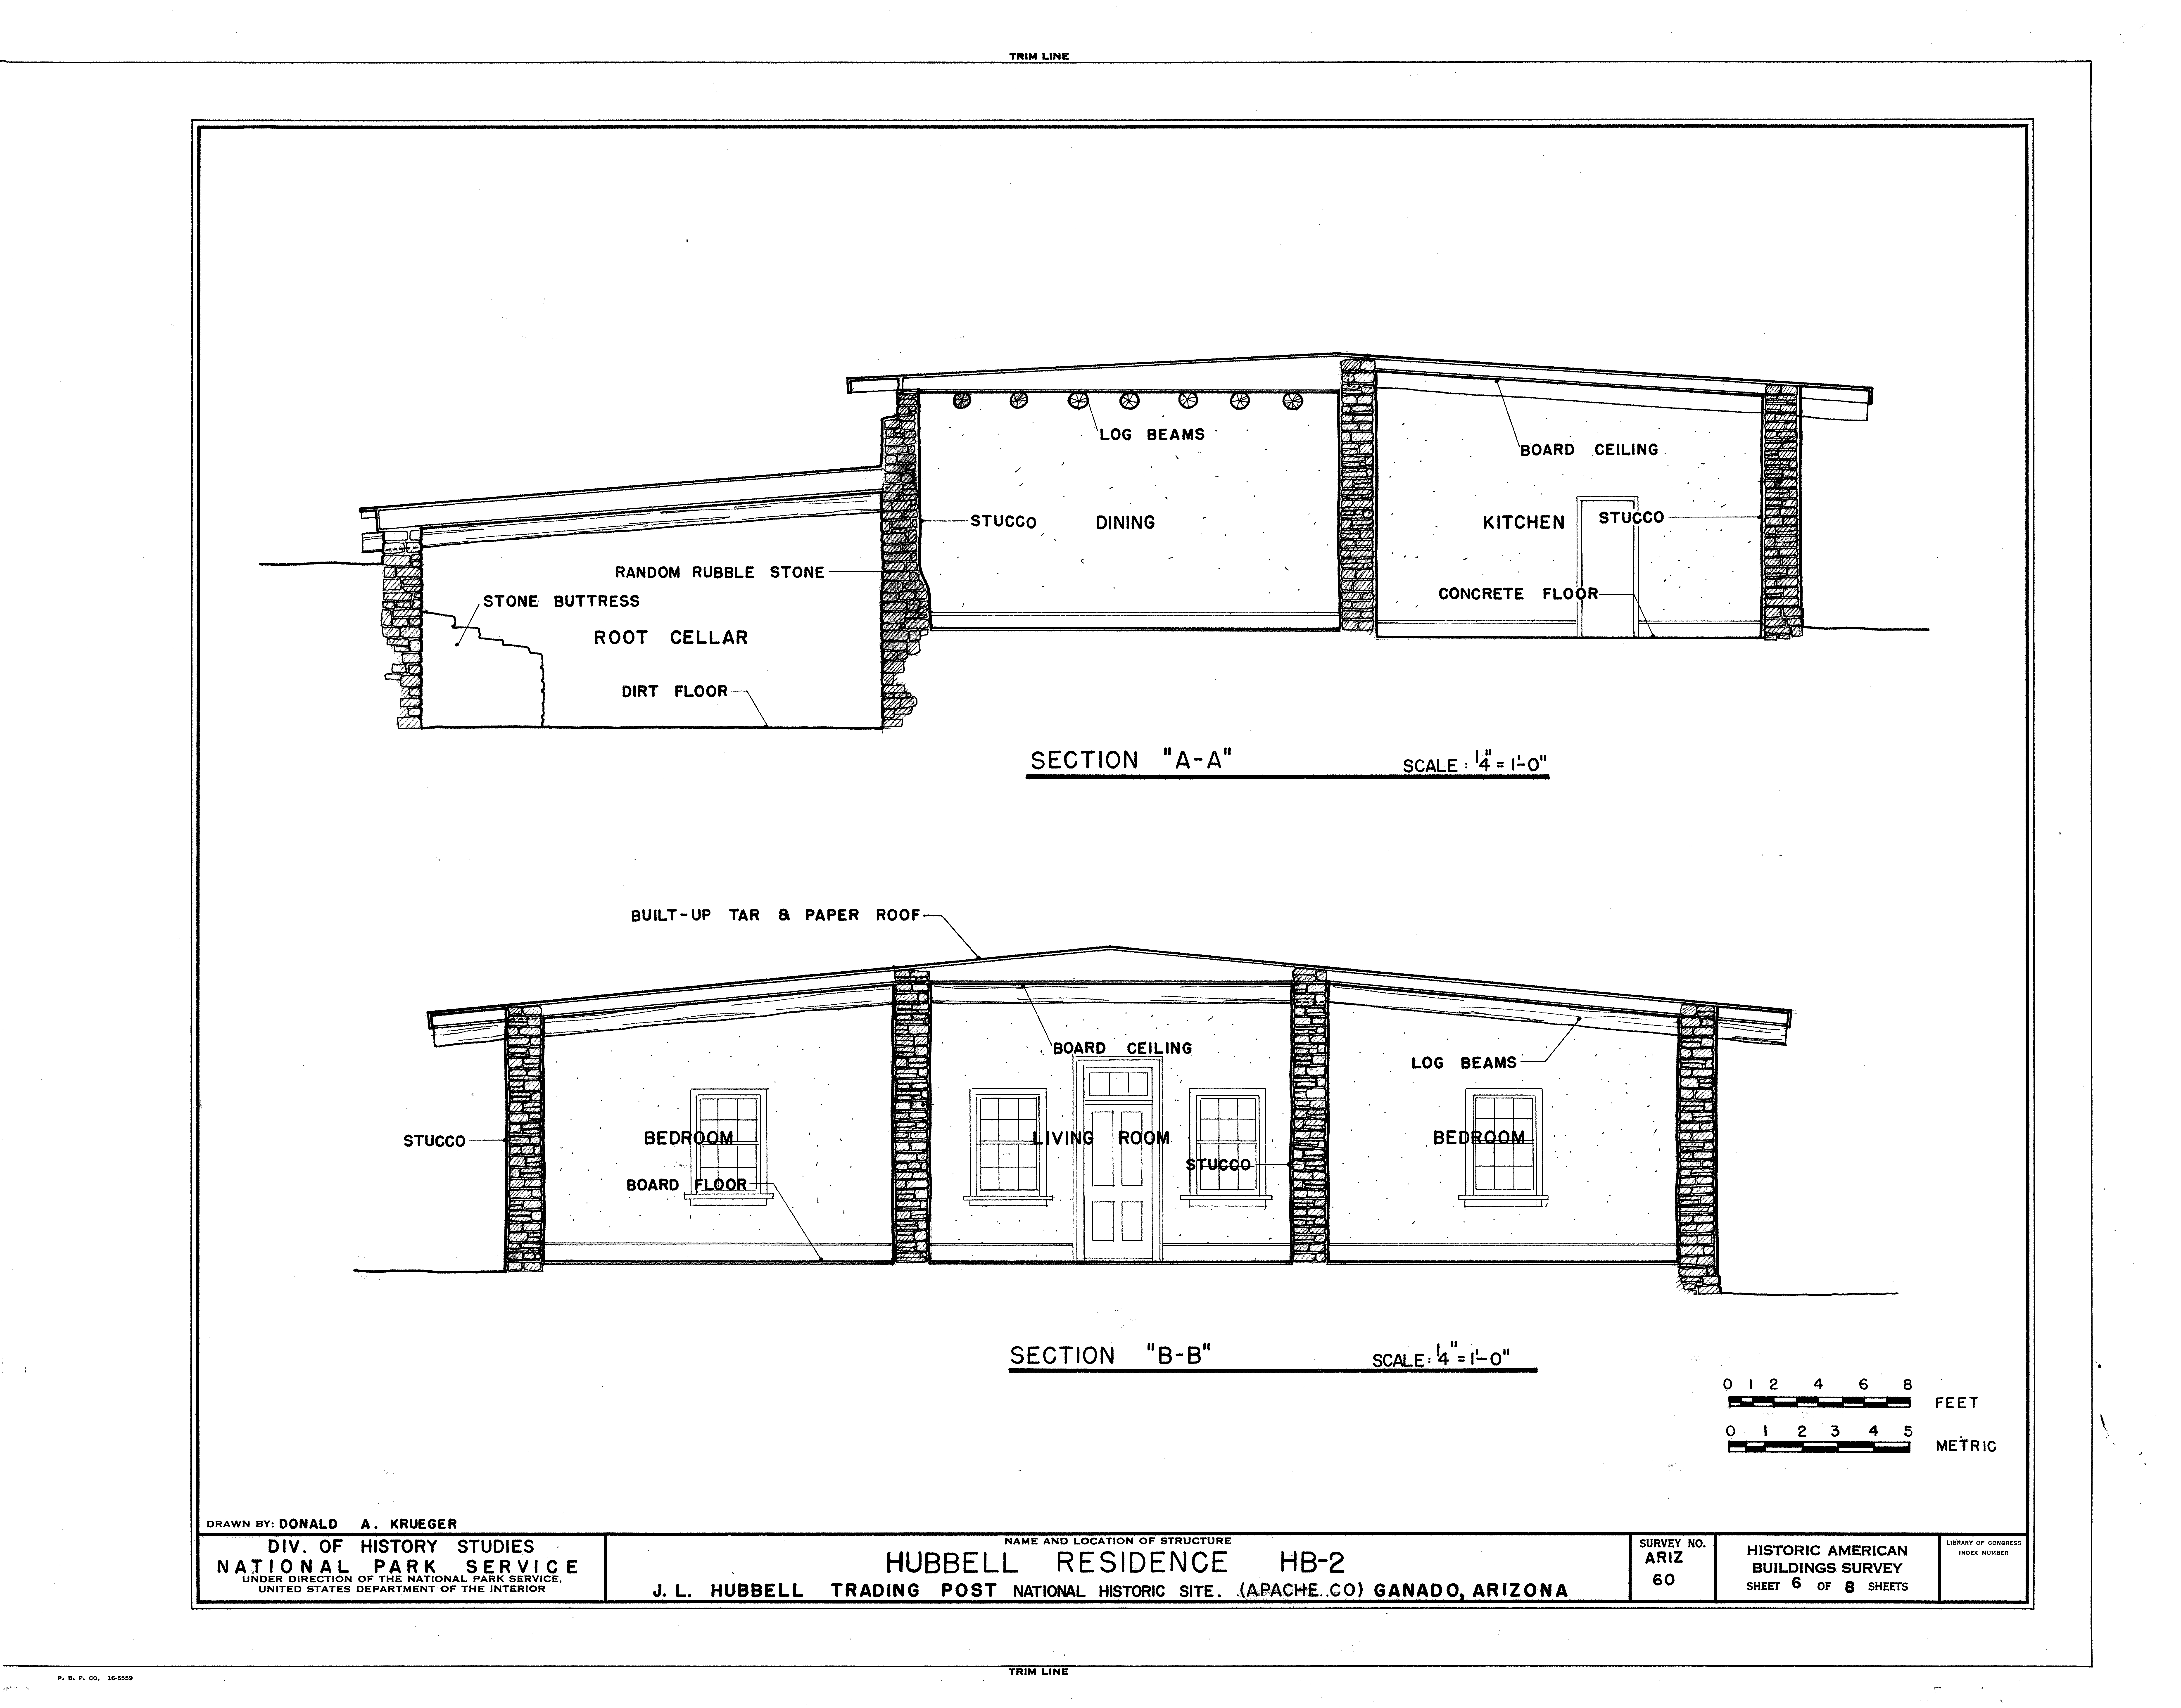 Hubbell Homes Floor Plans: File:J. L. Hubbell Trading Post, House, State Route 3